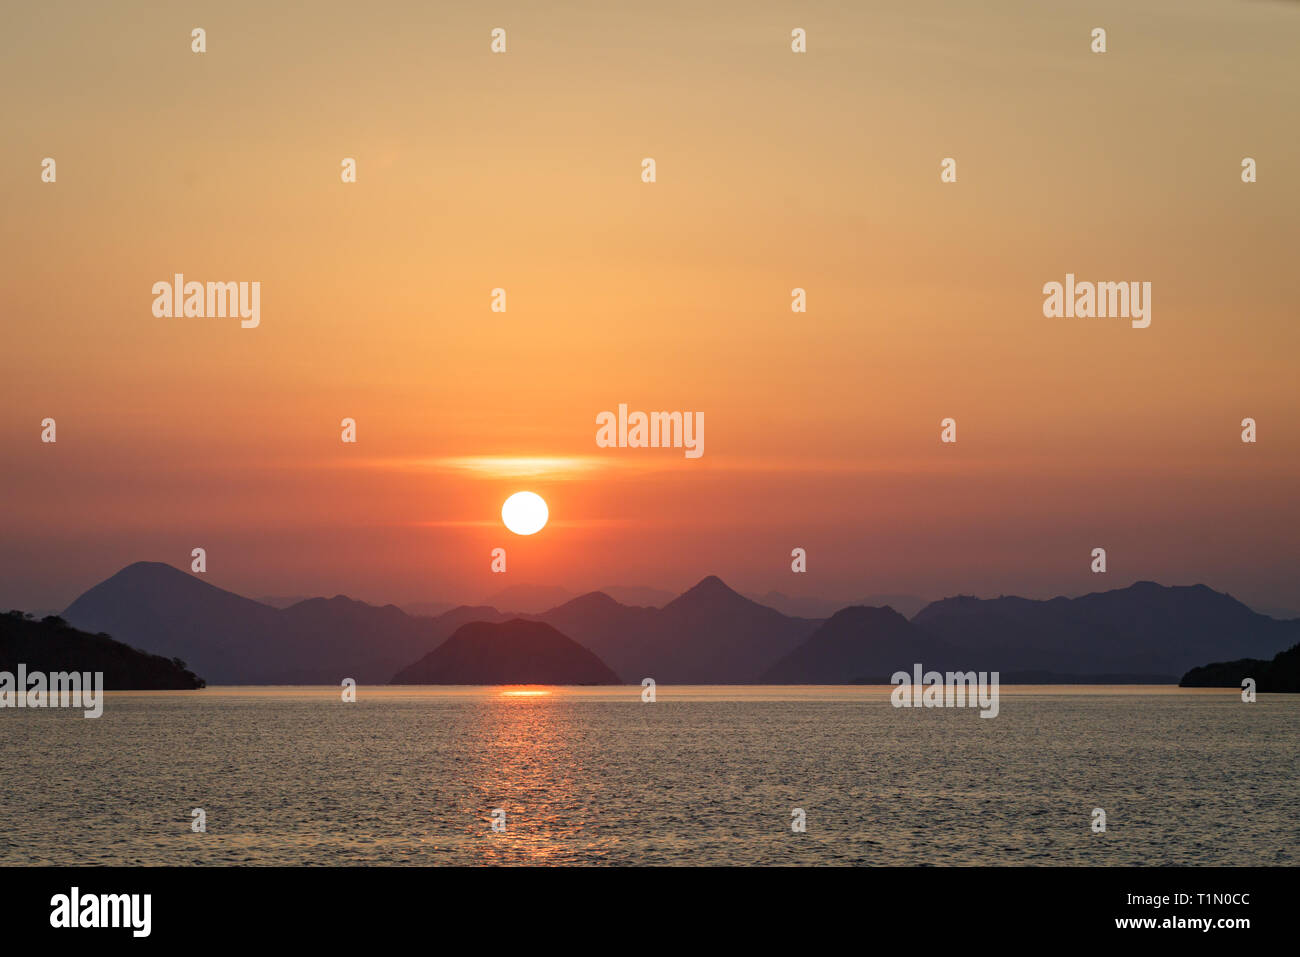 Sunset over the jagged mountains in Nussa Tenggara reflects on a calm sea - Stock Image